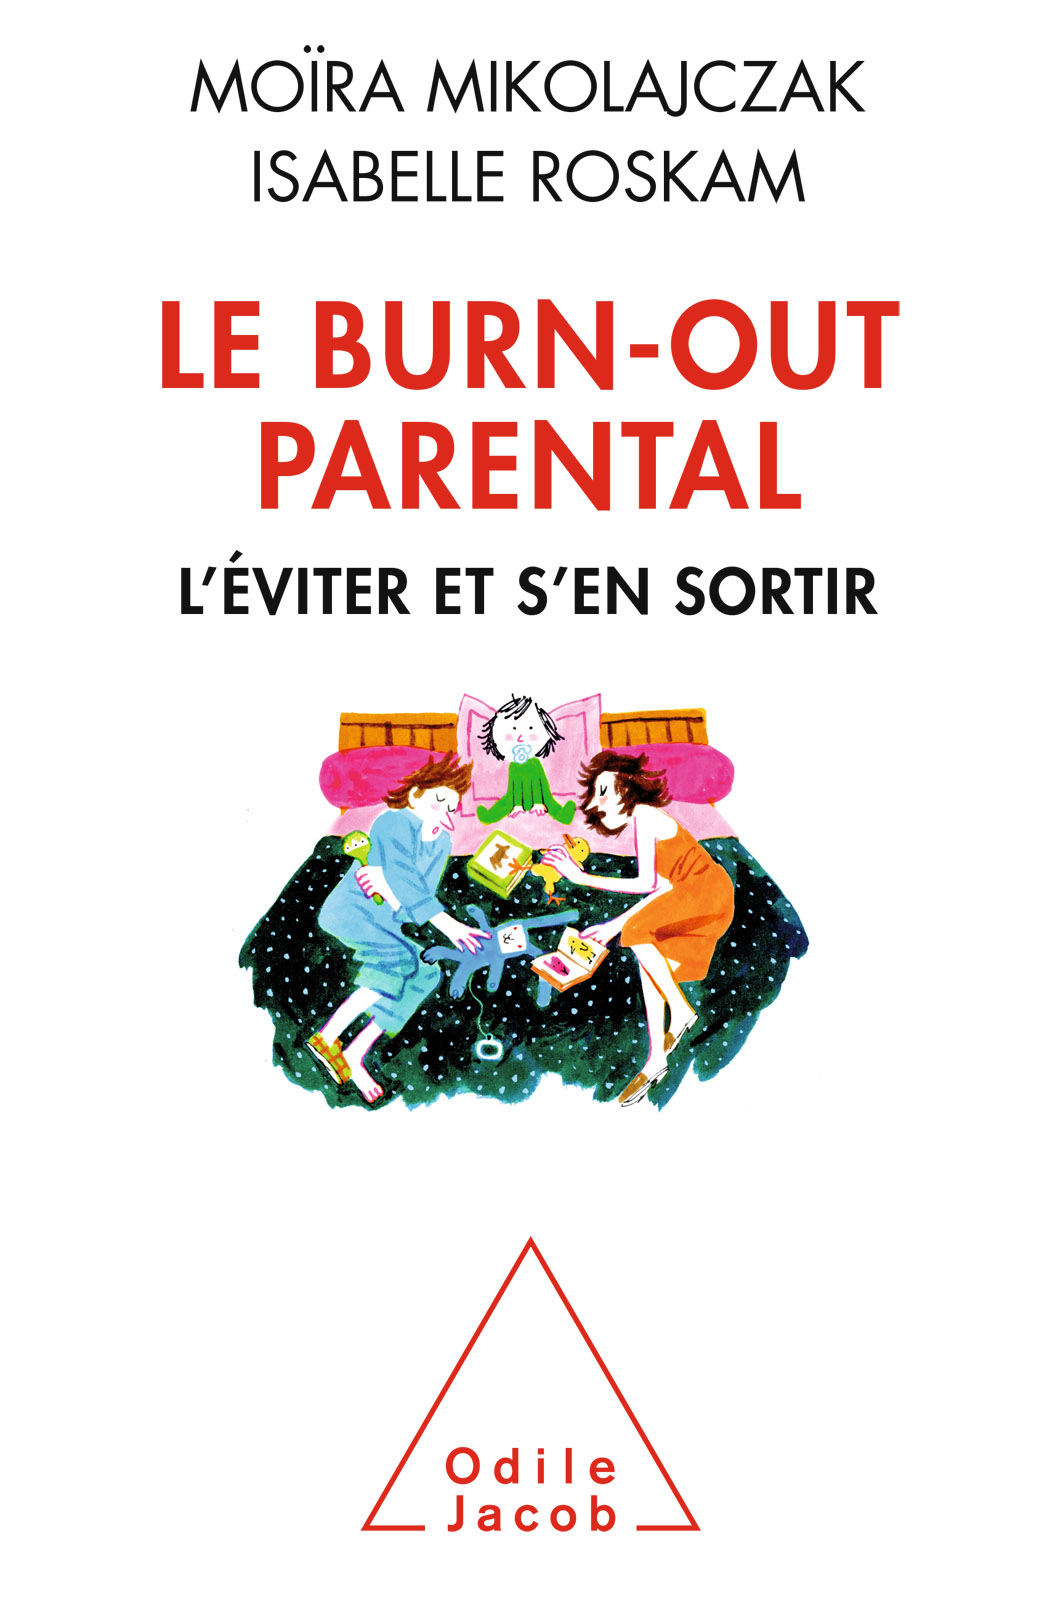 Le Burn-out parental